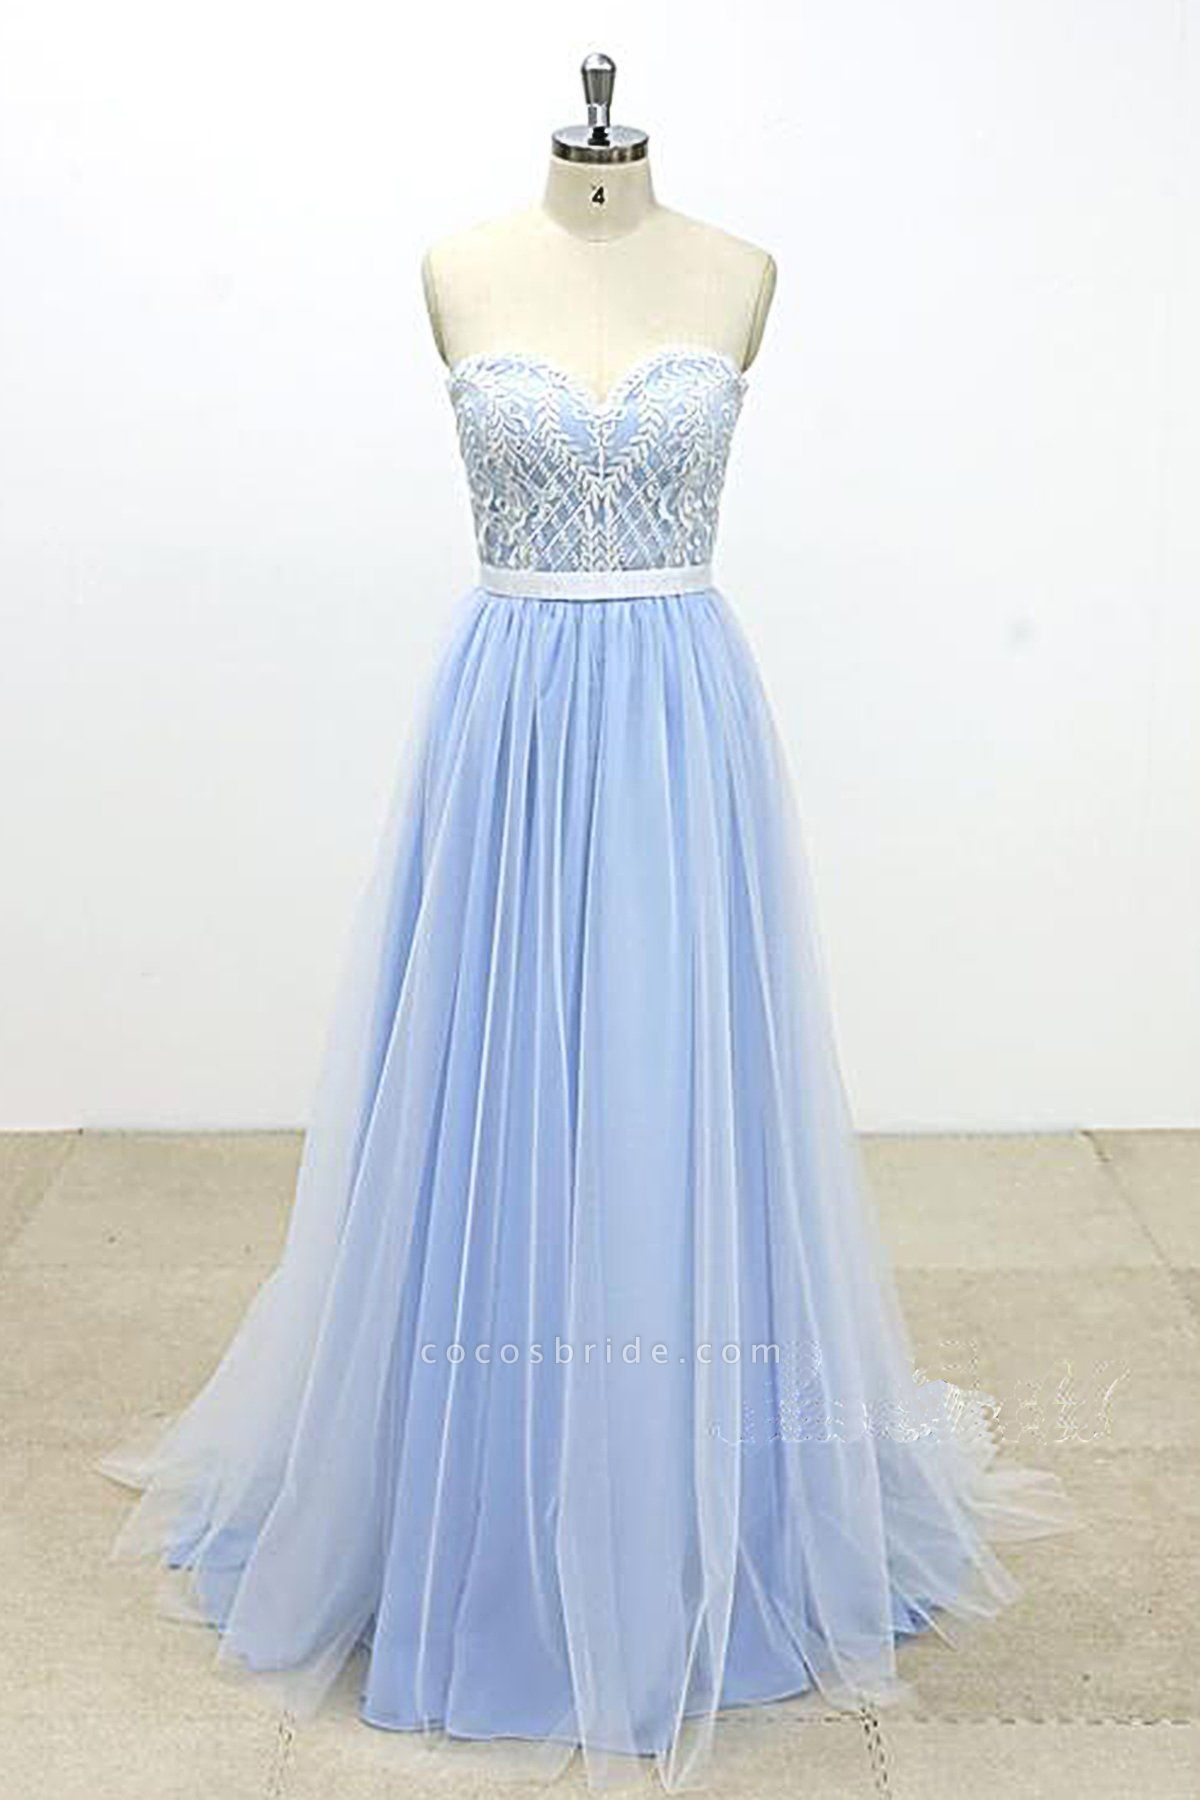 Aqua Blue And Ivory Tulle Strapless Long Lace Wedding Dress